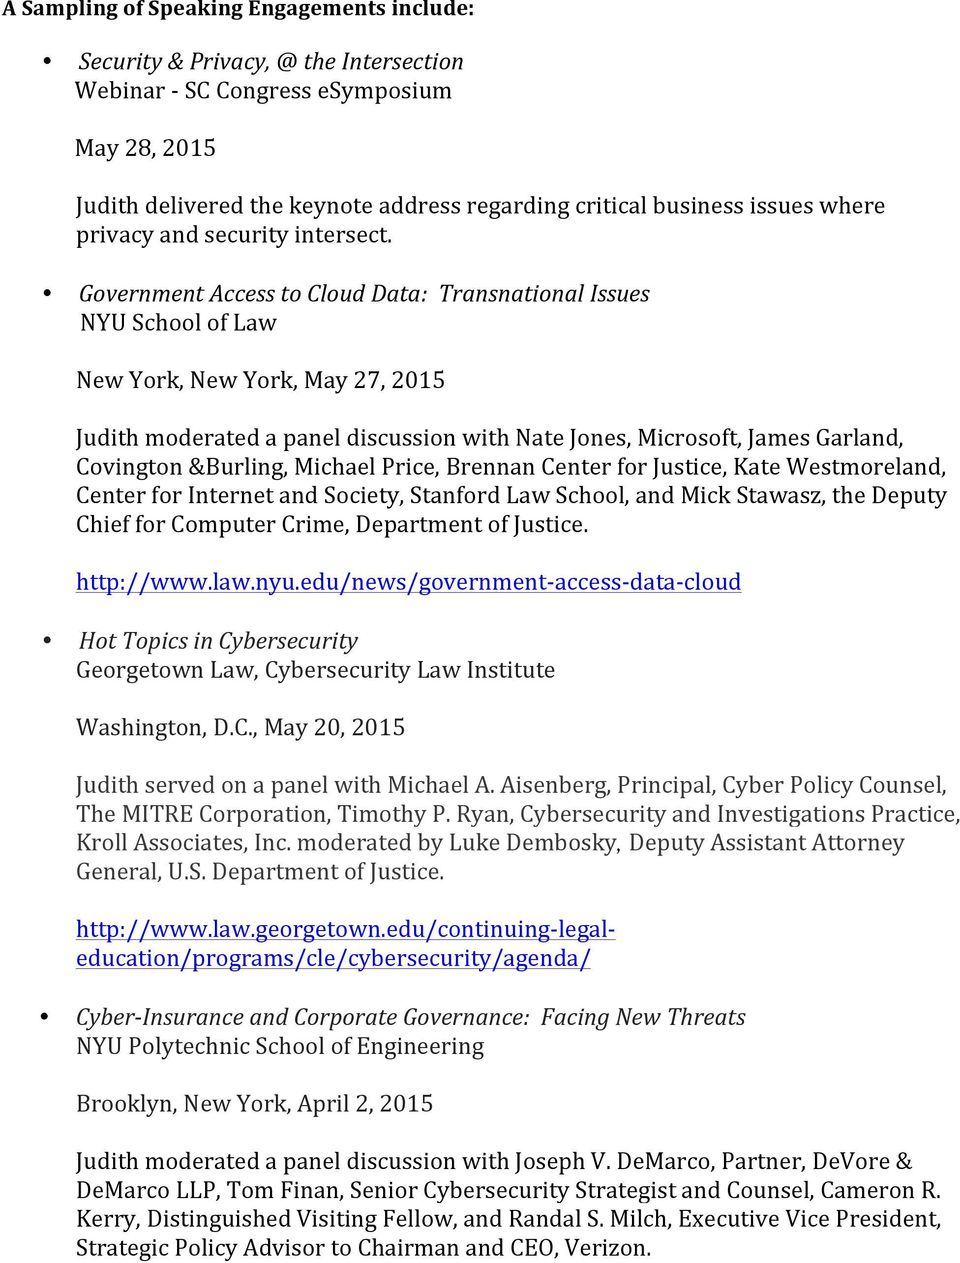 Government Access to Cloud Data: Transnational Issues NYU School of Law New York, New York, May 27, 2015 Judith moderated a panel discussion with Nate Jones, Microsoft, James Garland, Covington